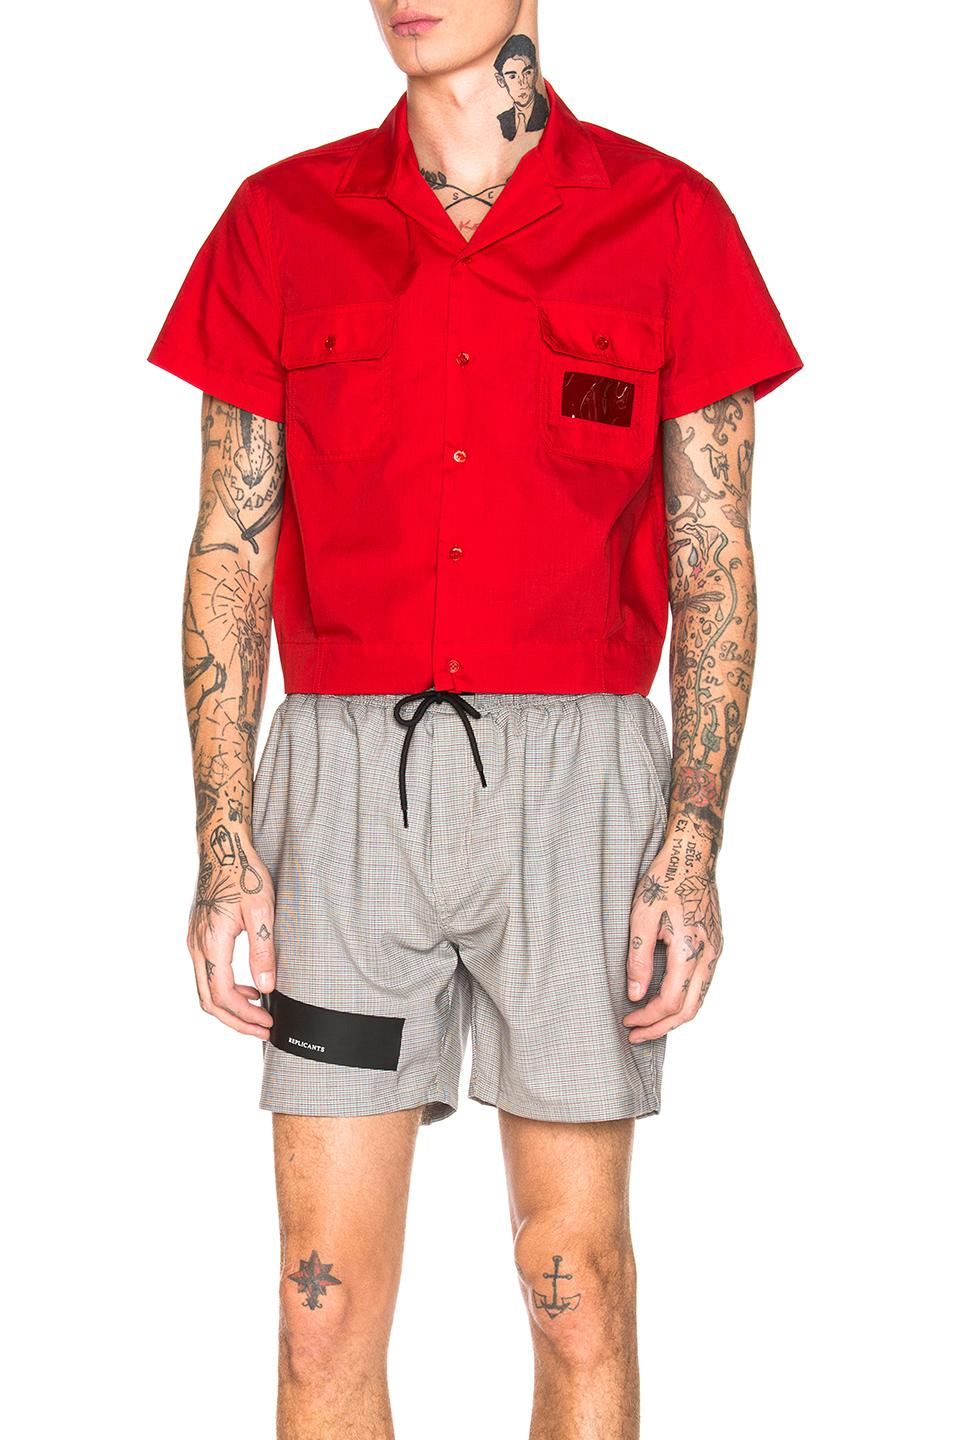 d8e67145db01be Lyst - Raf Simons Cropped Shirt in Red